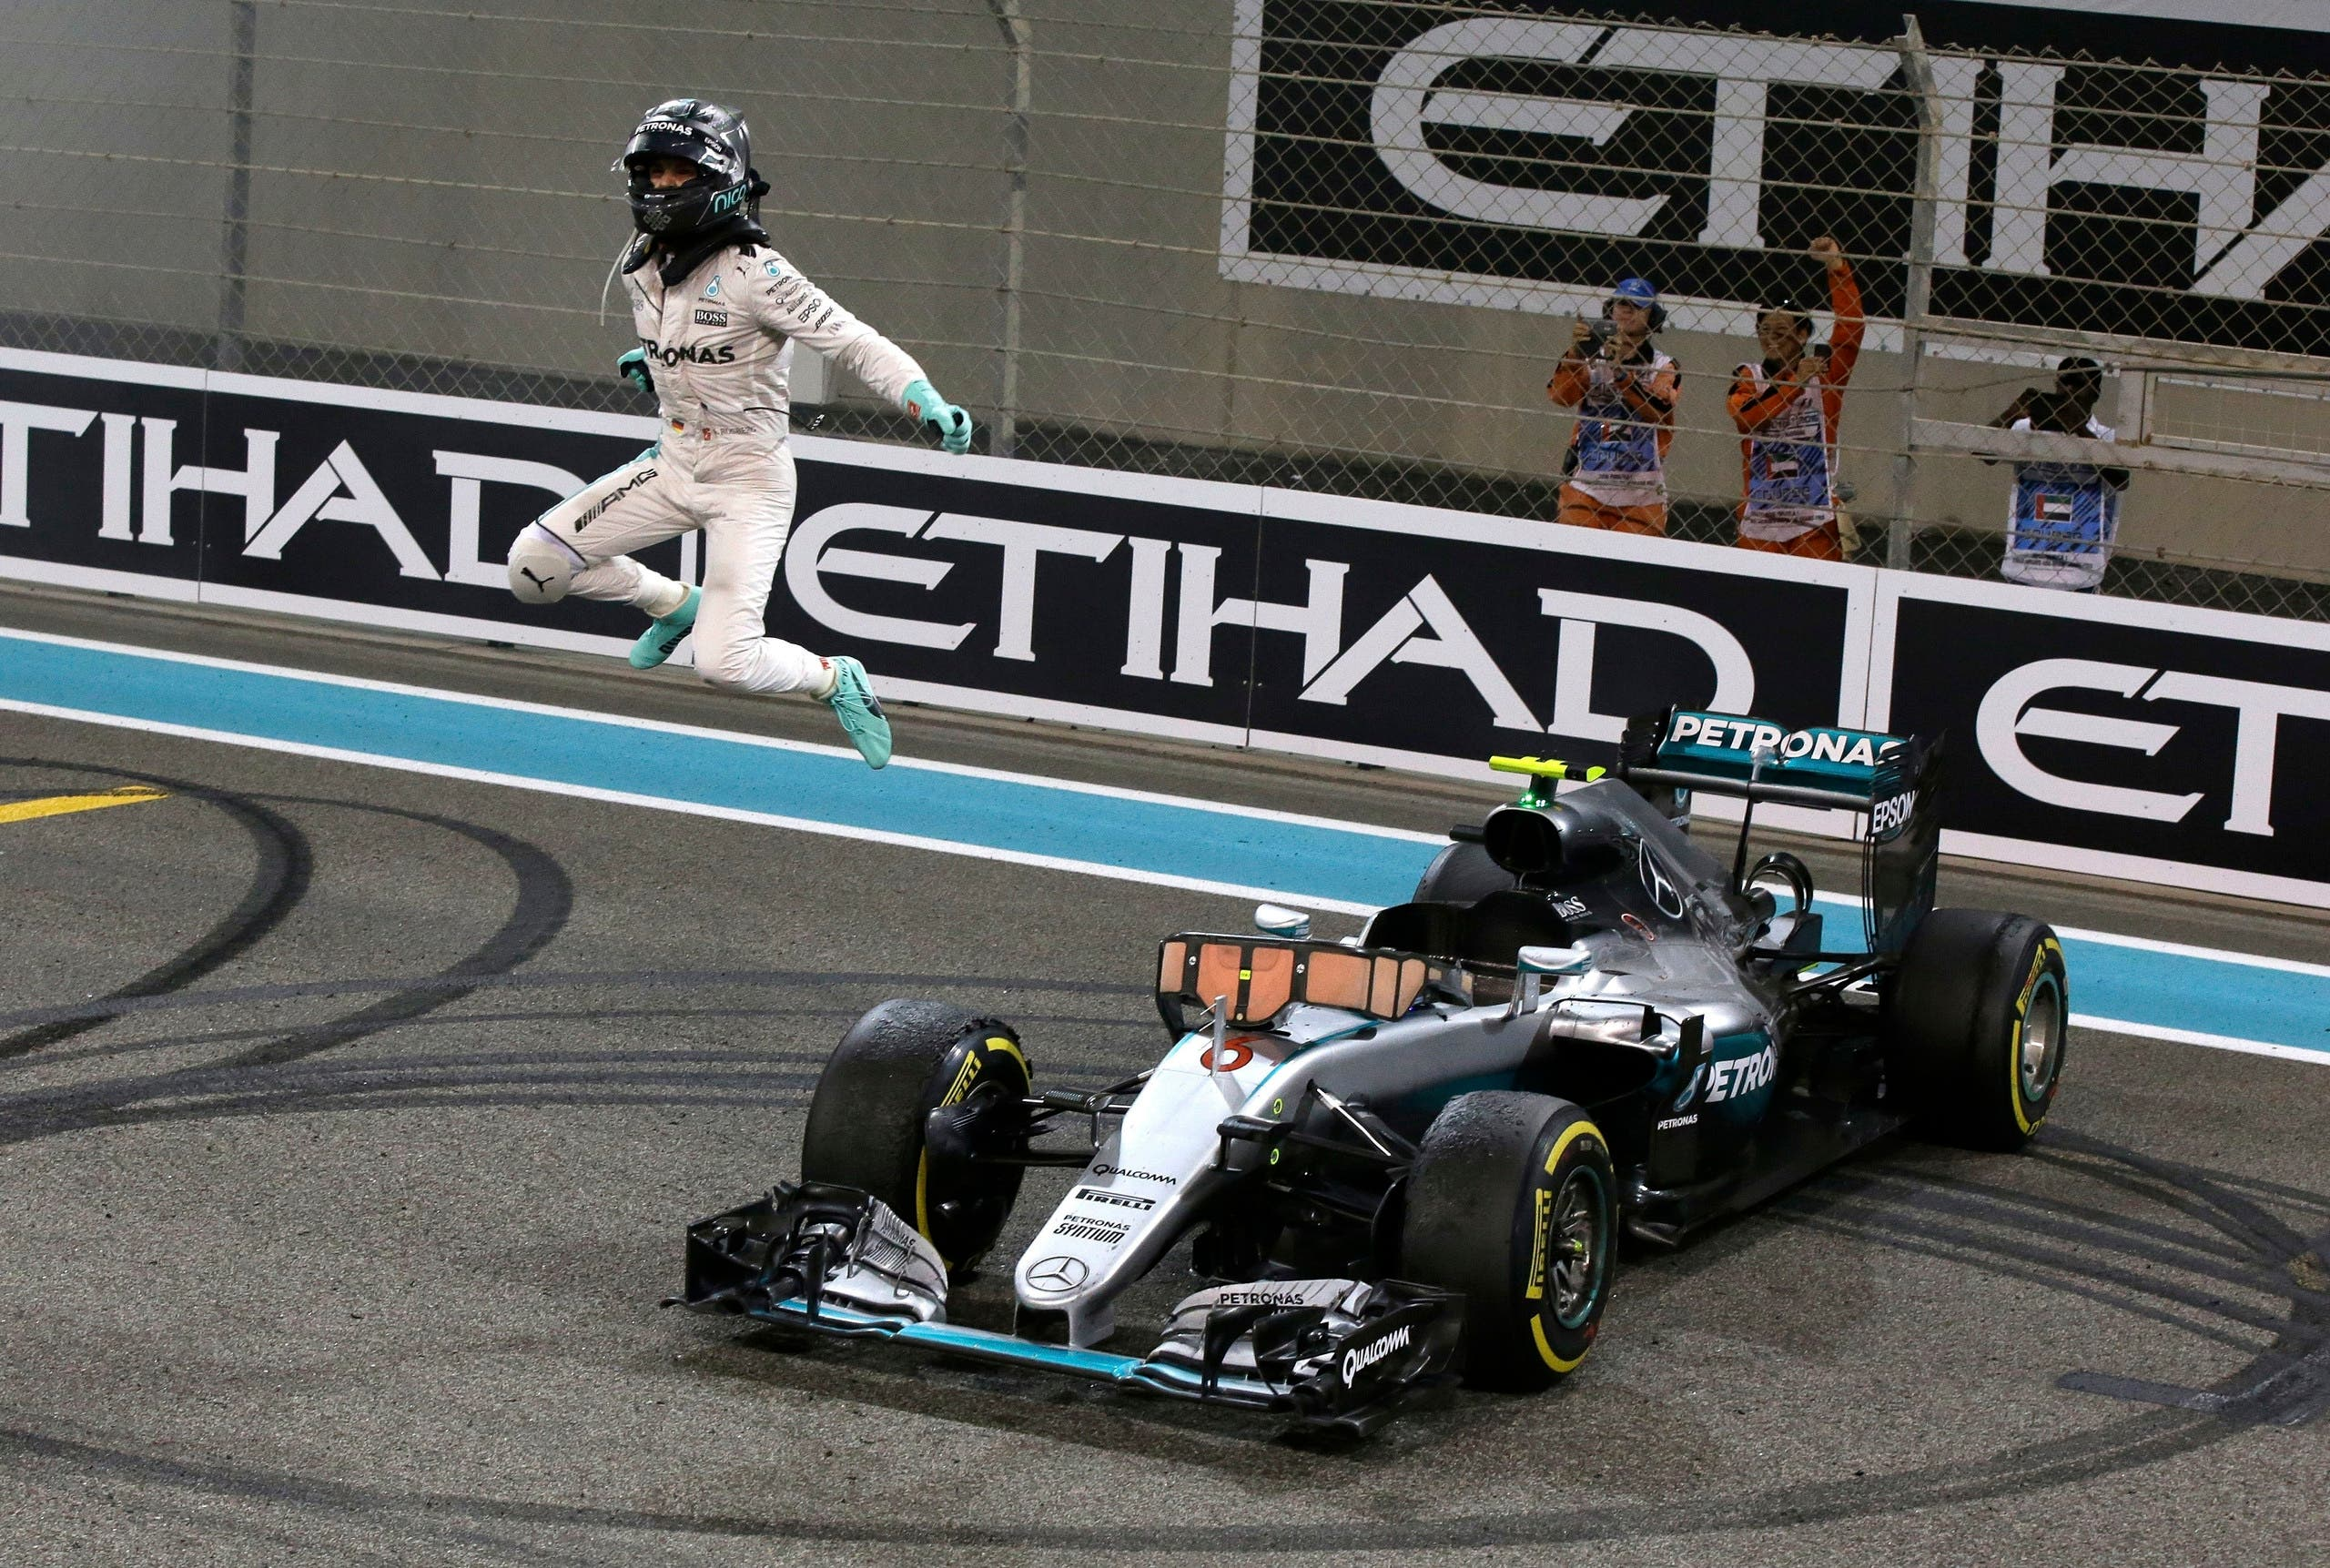 Mercedes driver Nico Rosberg of Germany celebrates after finishing second to win the 2016 world championship during the Emirates Formula One Grand Prix at the Yas Marina racetrack in Abu Dhabi, United Arab Emirates. (AP)